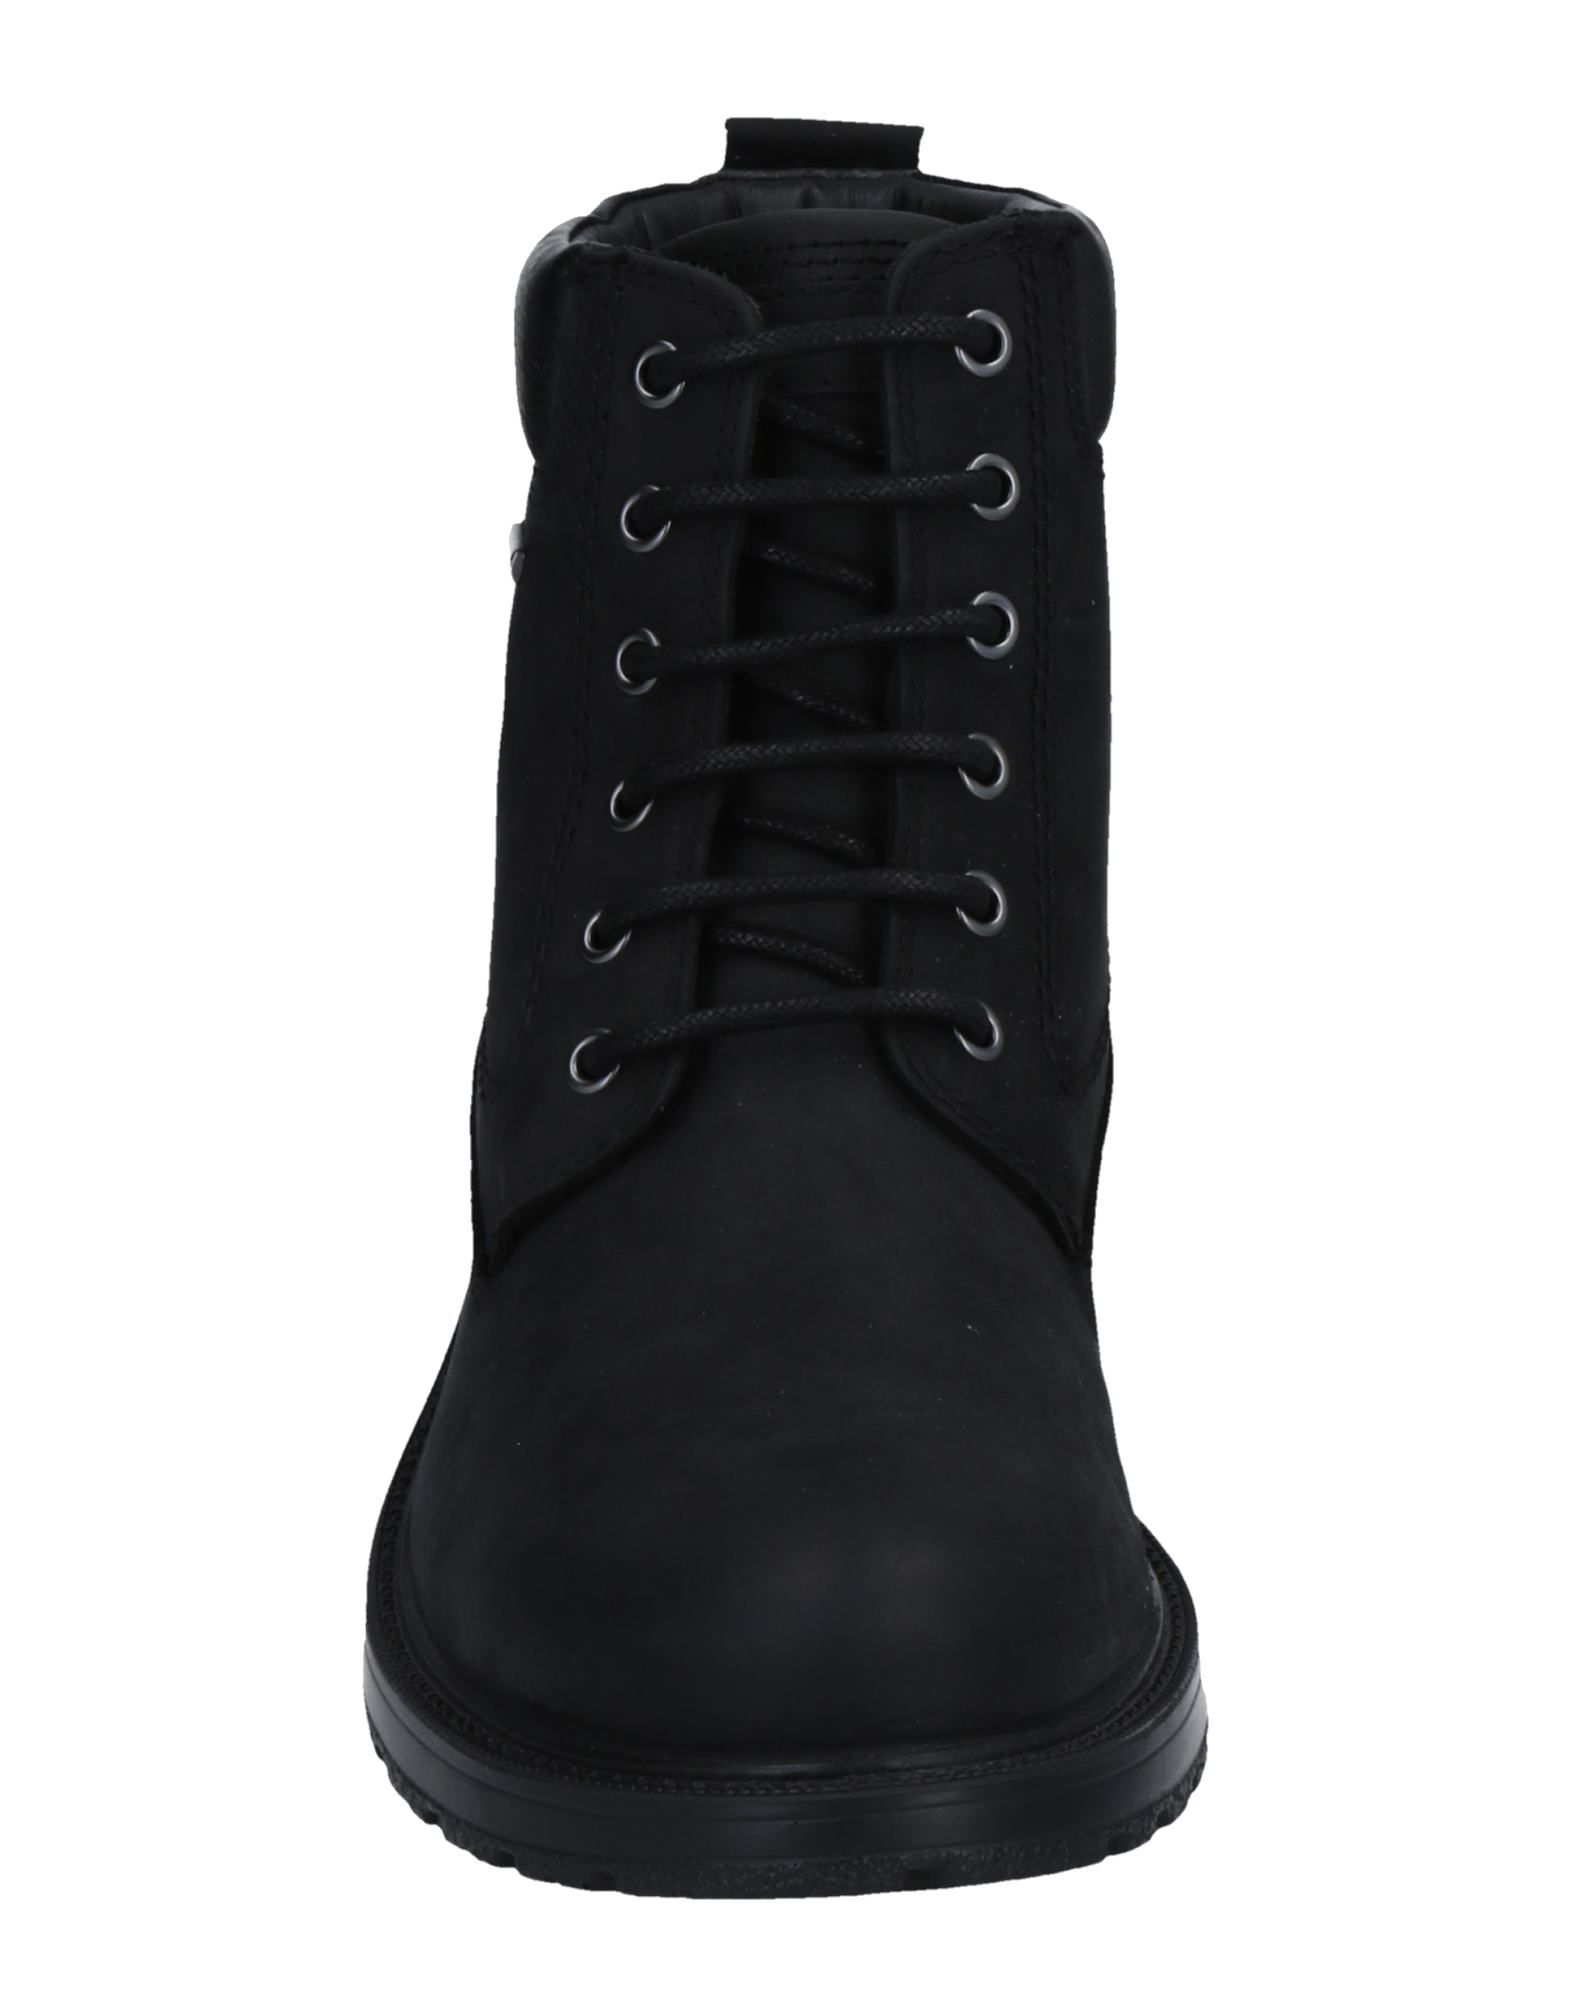 Geox Boots - on Men Geox Boots online on -  Canada - 11519920TW 4238d9